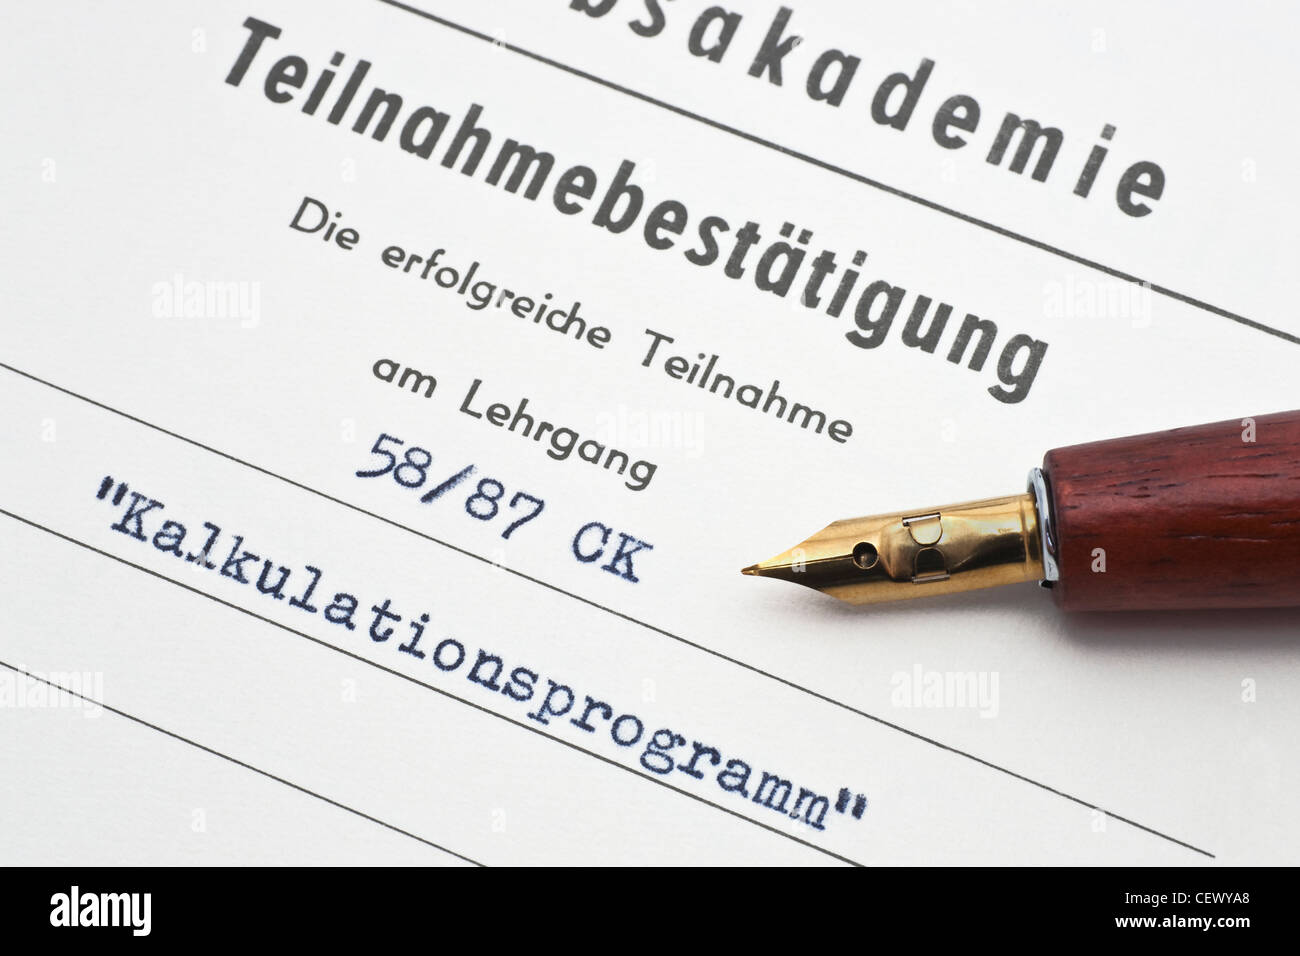 Detail photo of a confirmation of participation in a calculation program course, German language - Stock Image